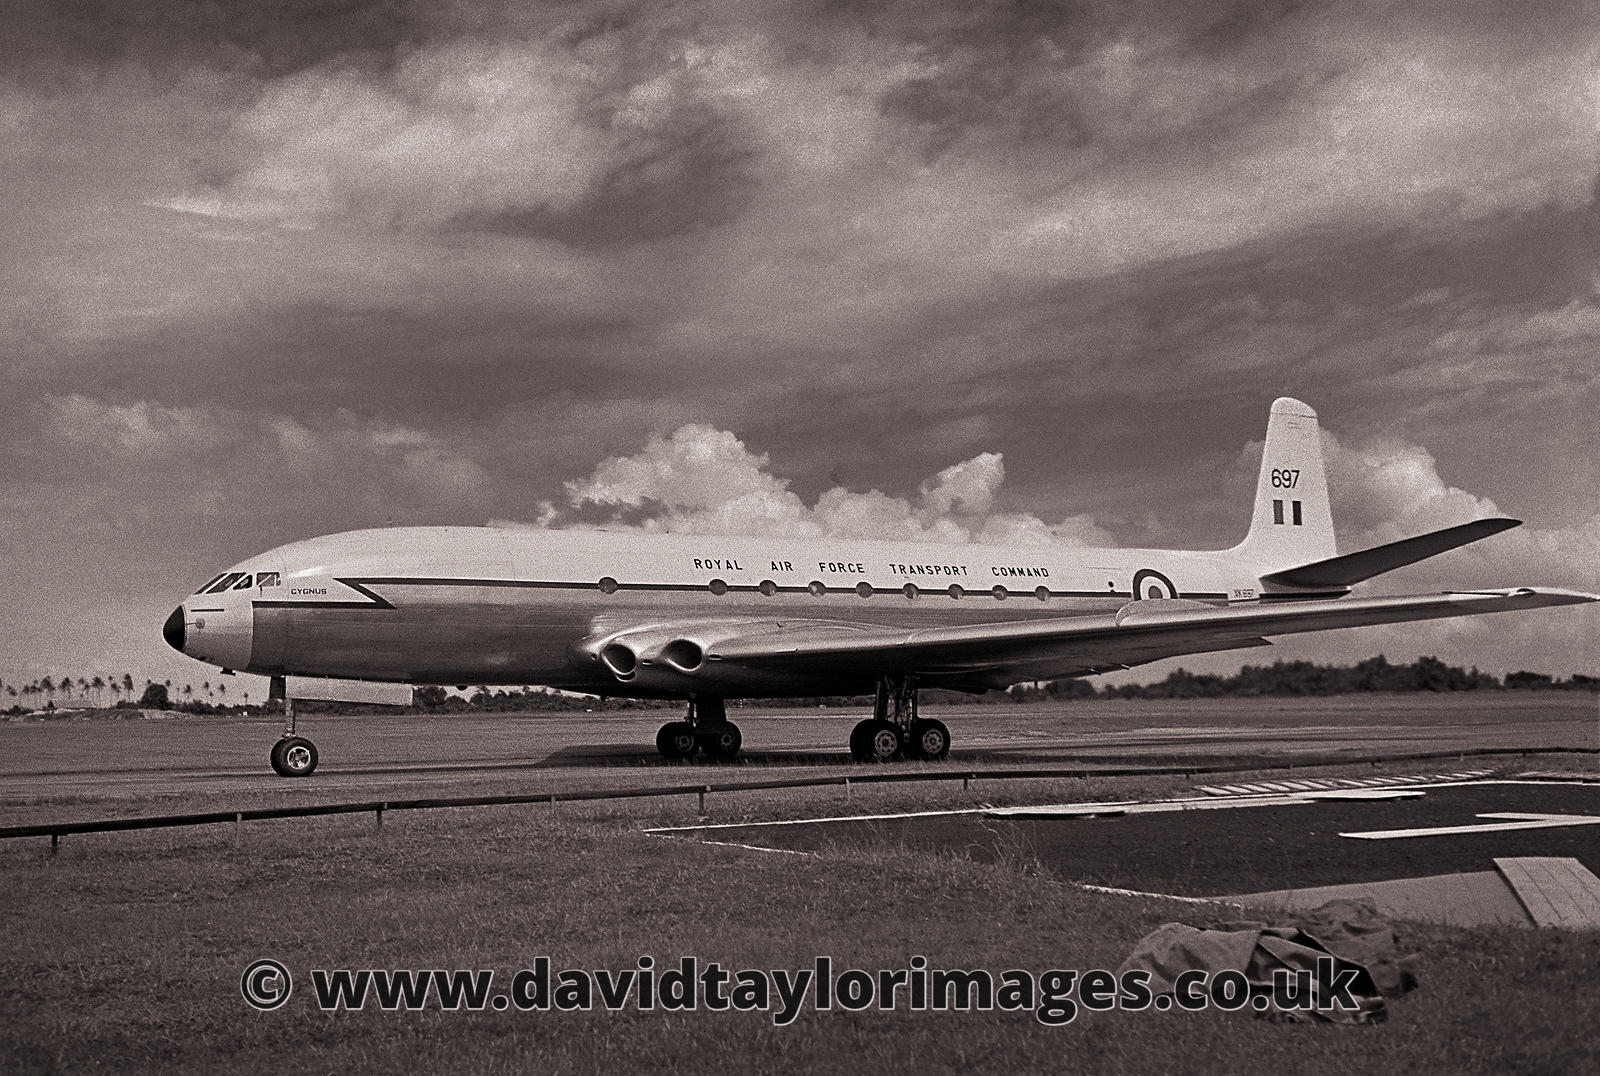 RAFAIR Flight 2207 taxies out  |  Comet C2 XK697  |  RAF Changi August 1962